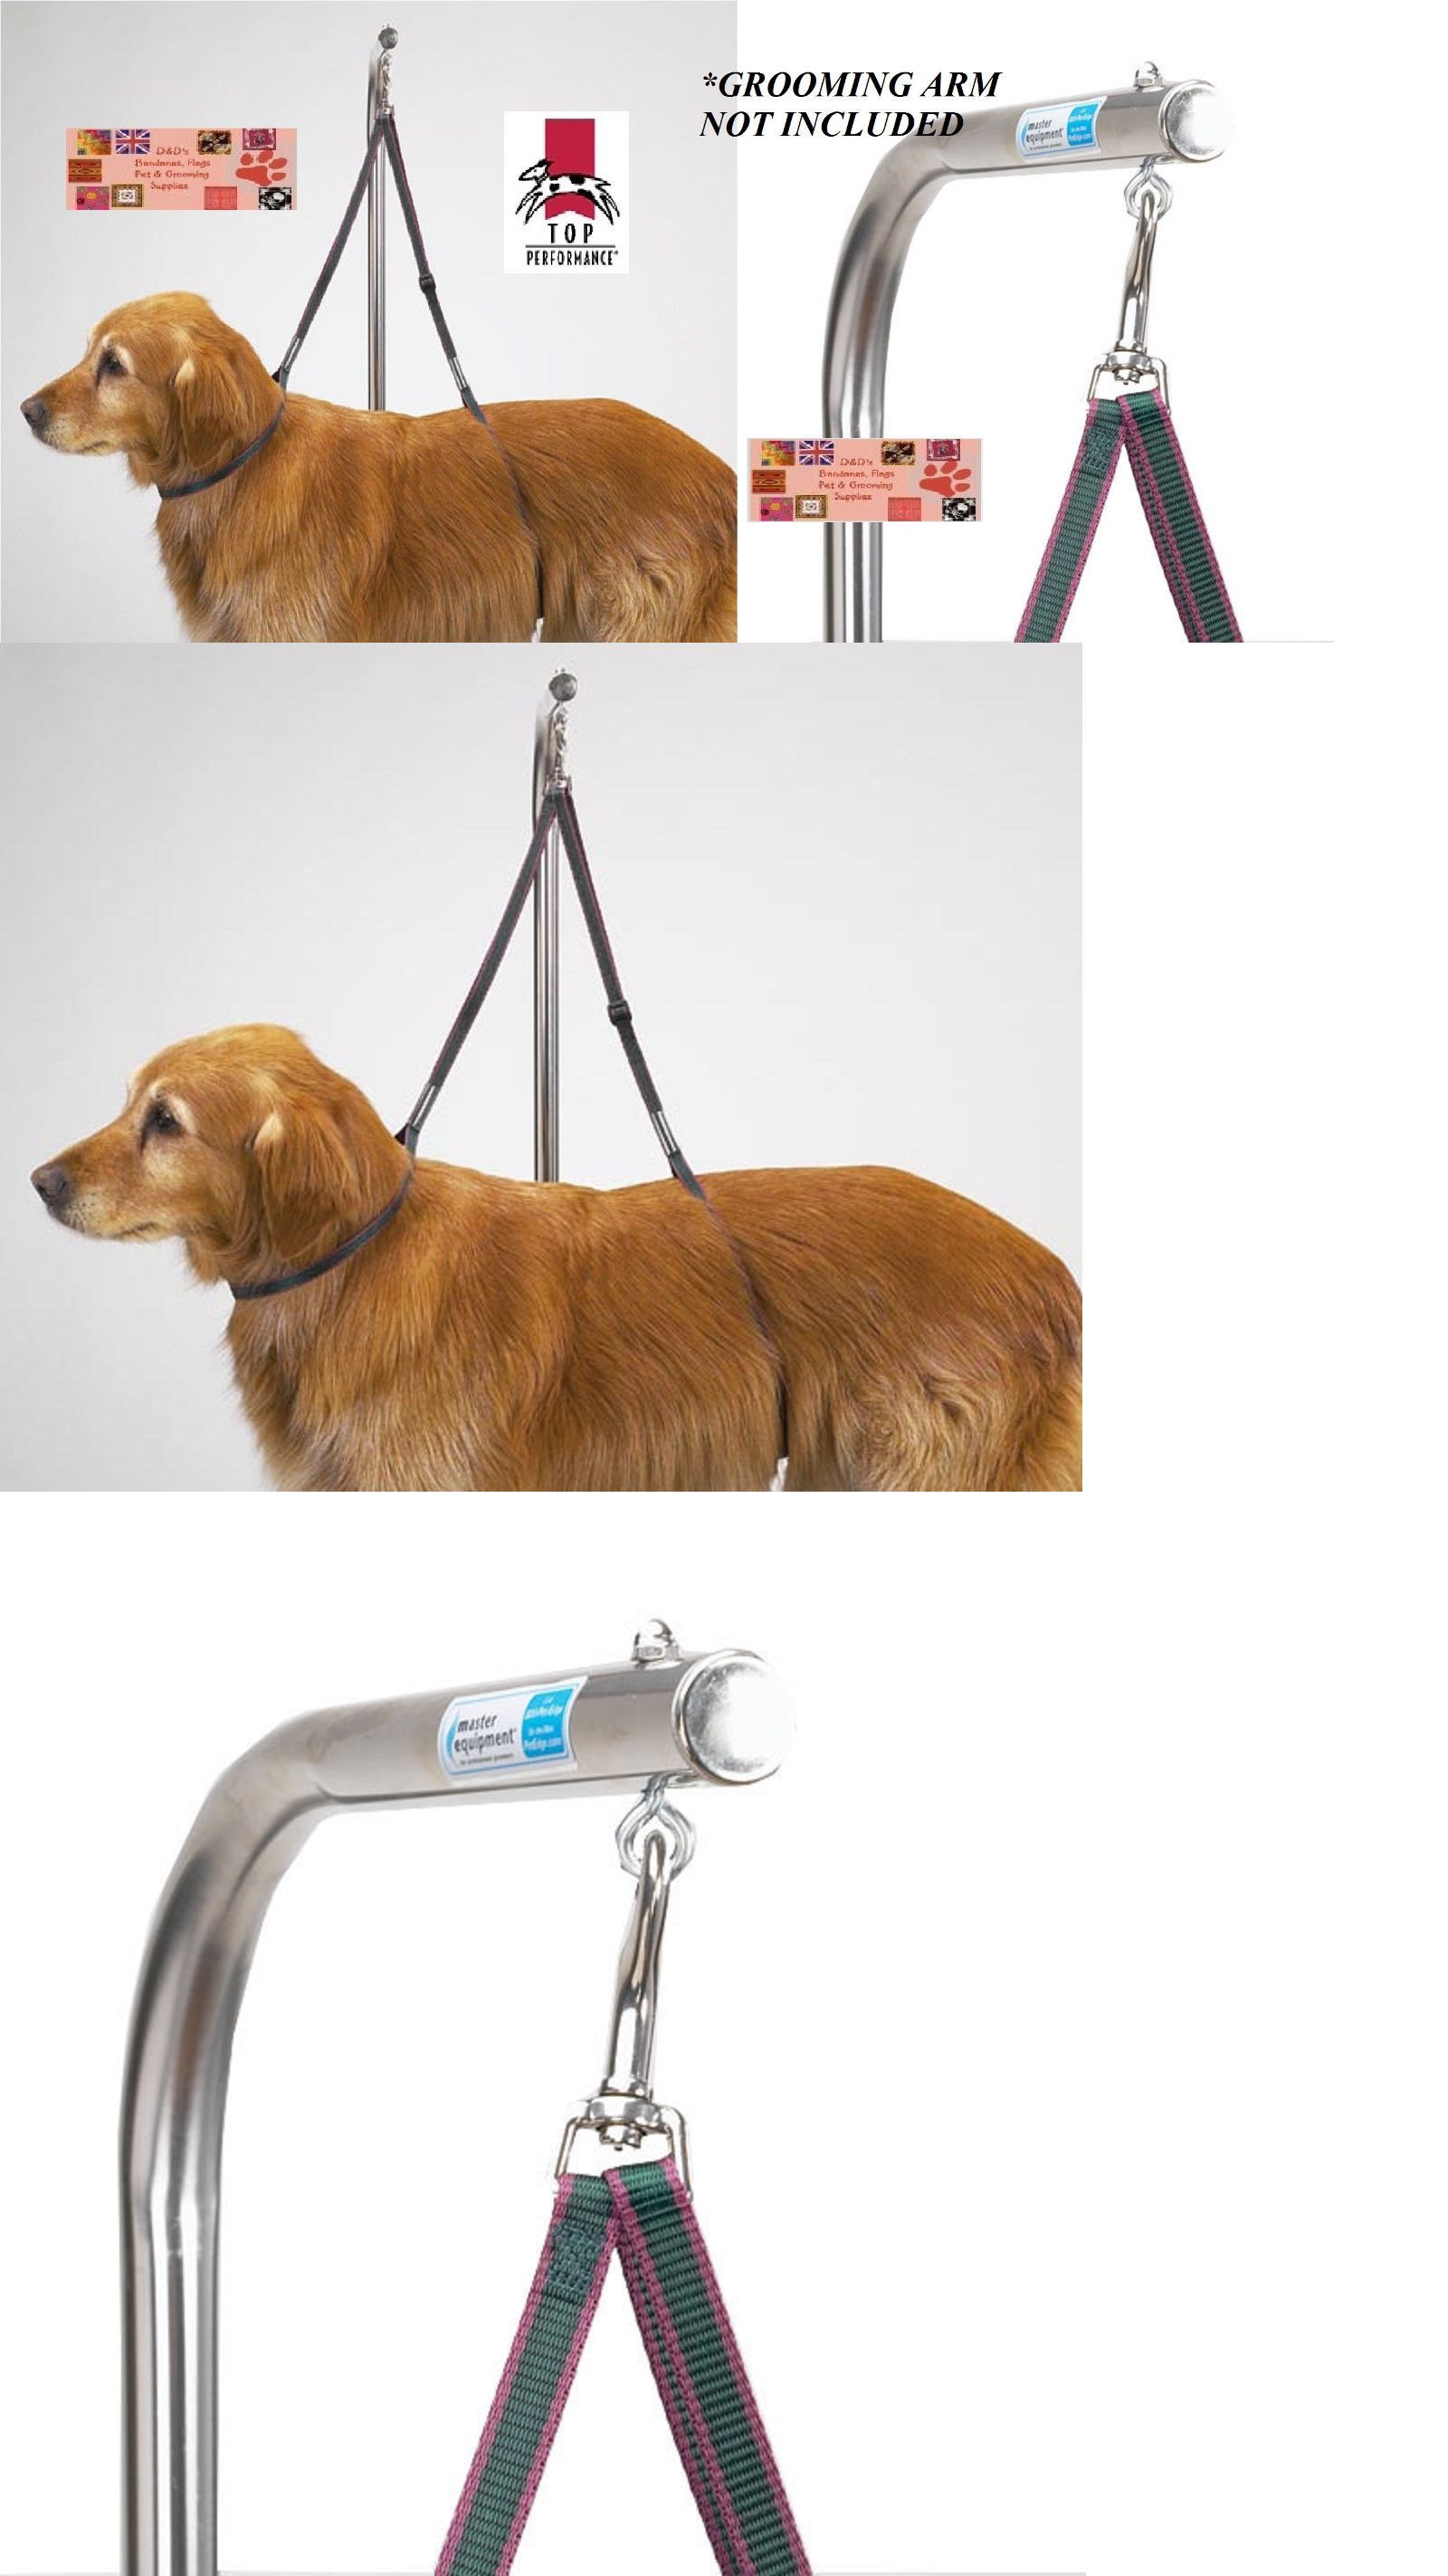 Pin On Grooming Tables 146241